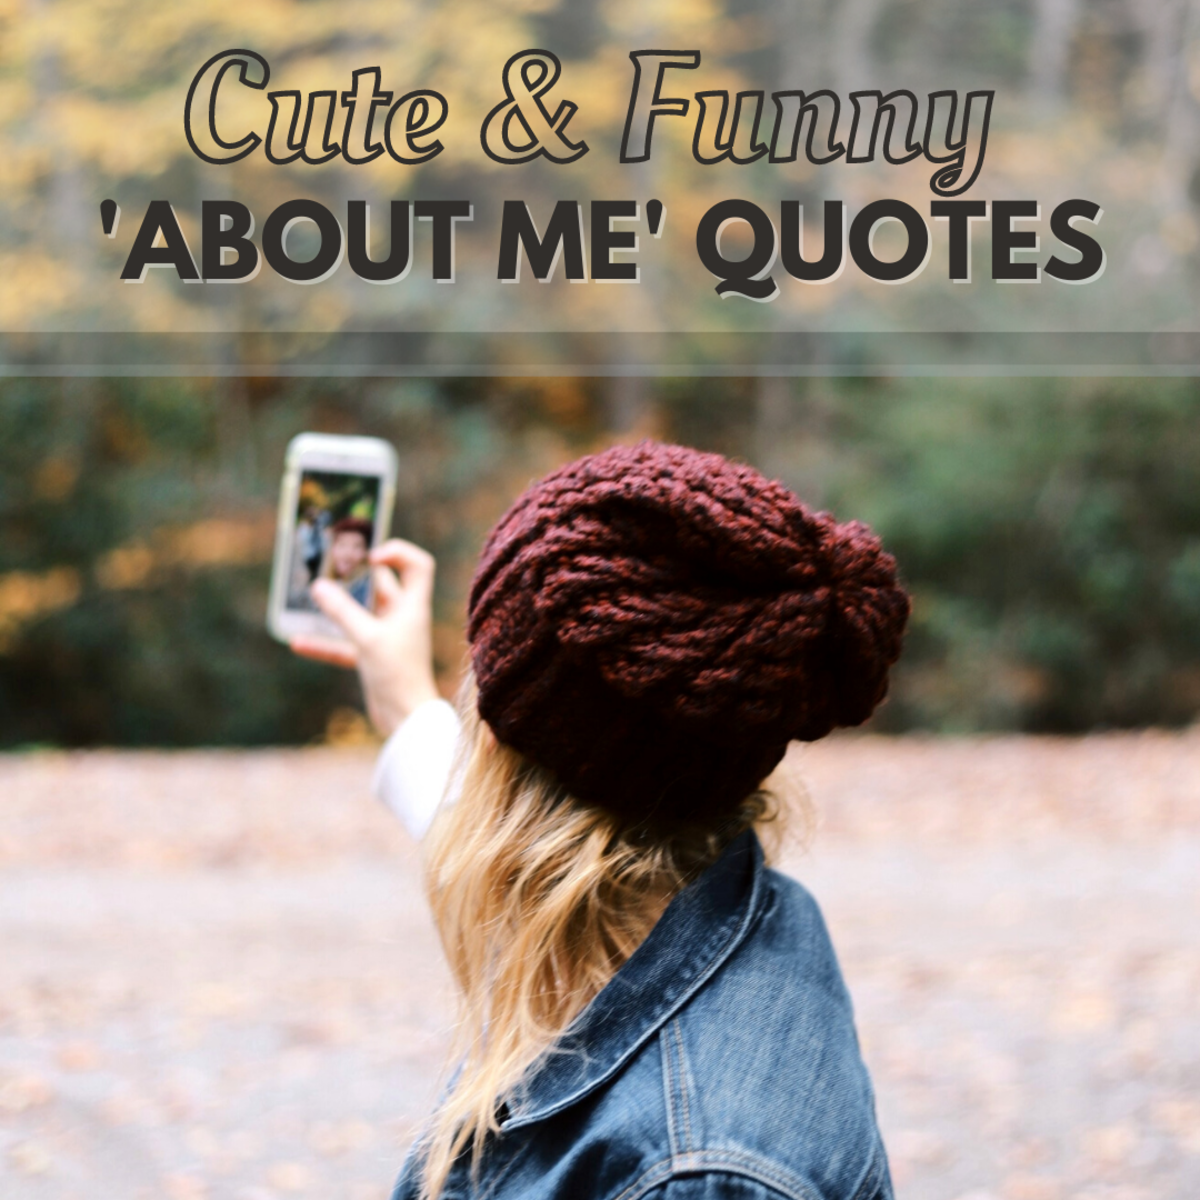 Need a quote for the 'About Me' section of your social media profile? Read on to find 200+ examples to inspire you!